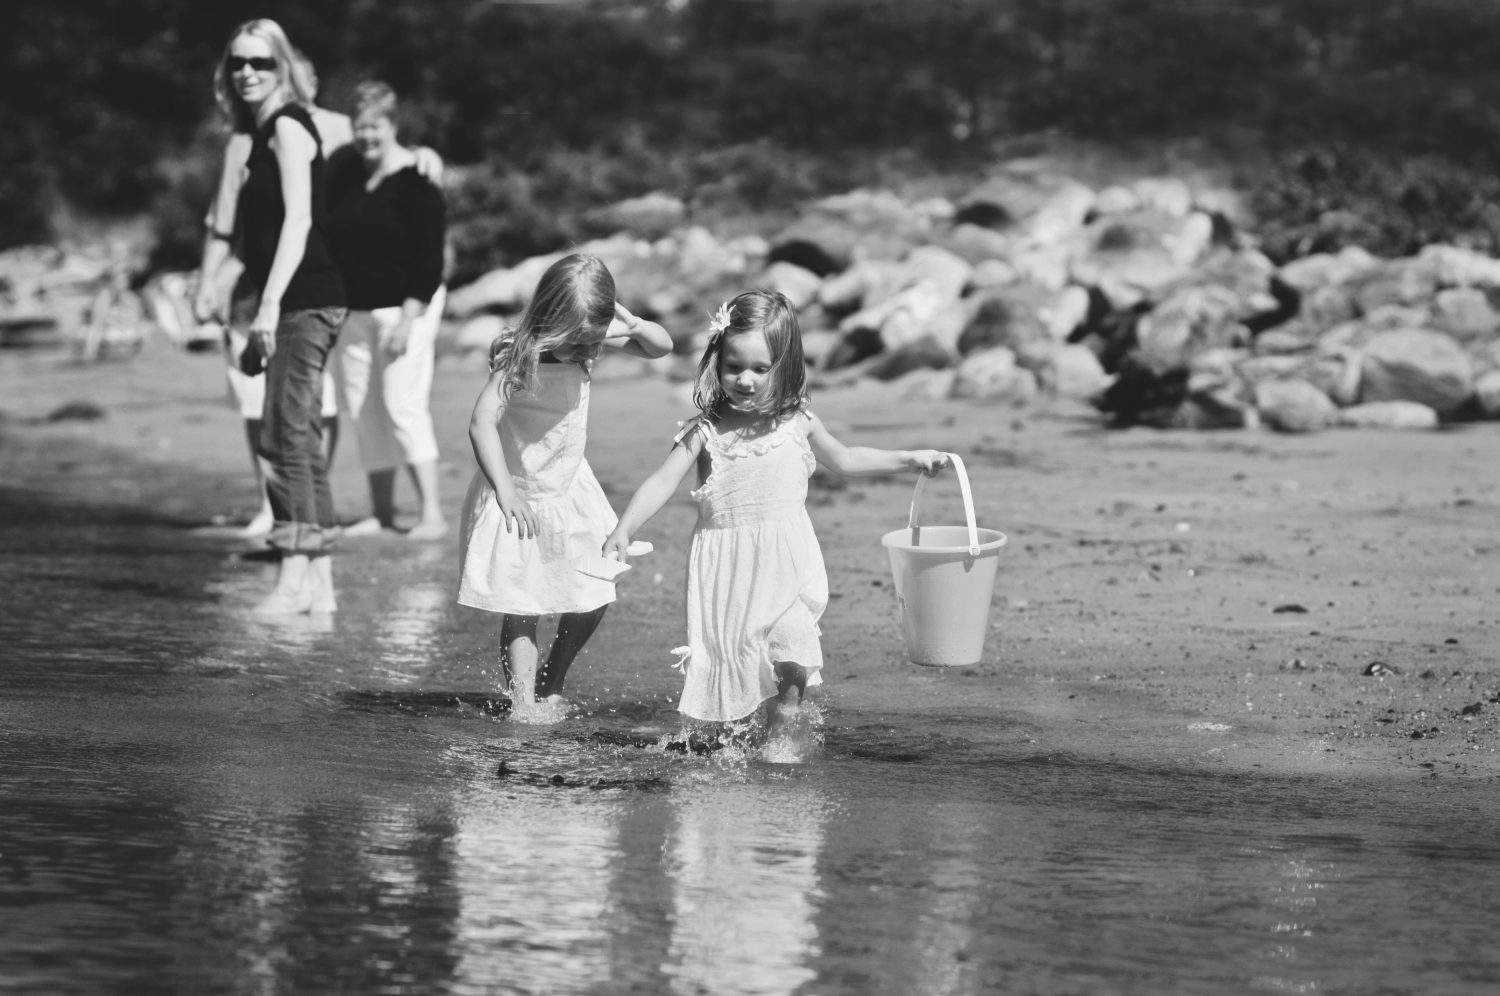 two little girls in white dresses running barefoot along the waters edge holding buckets